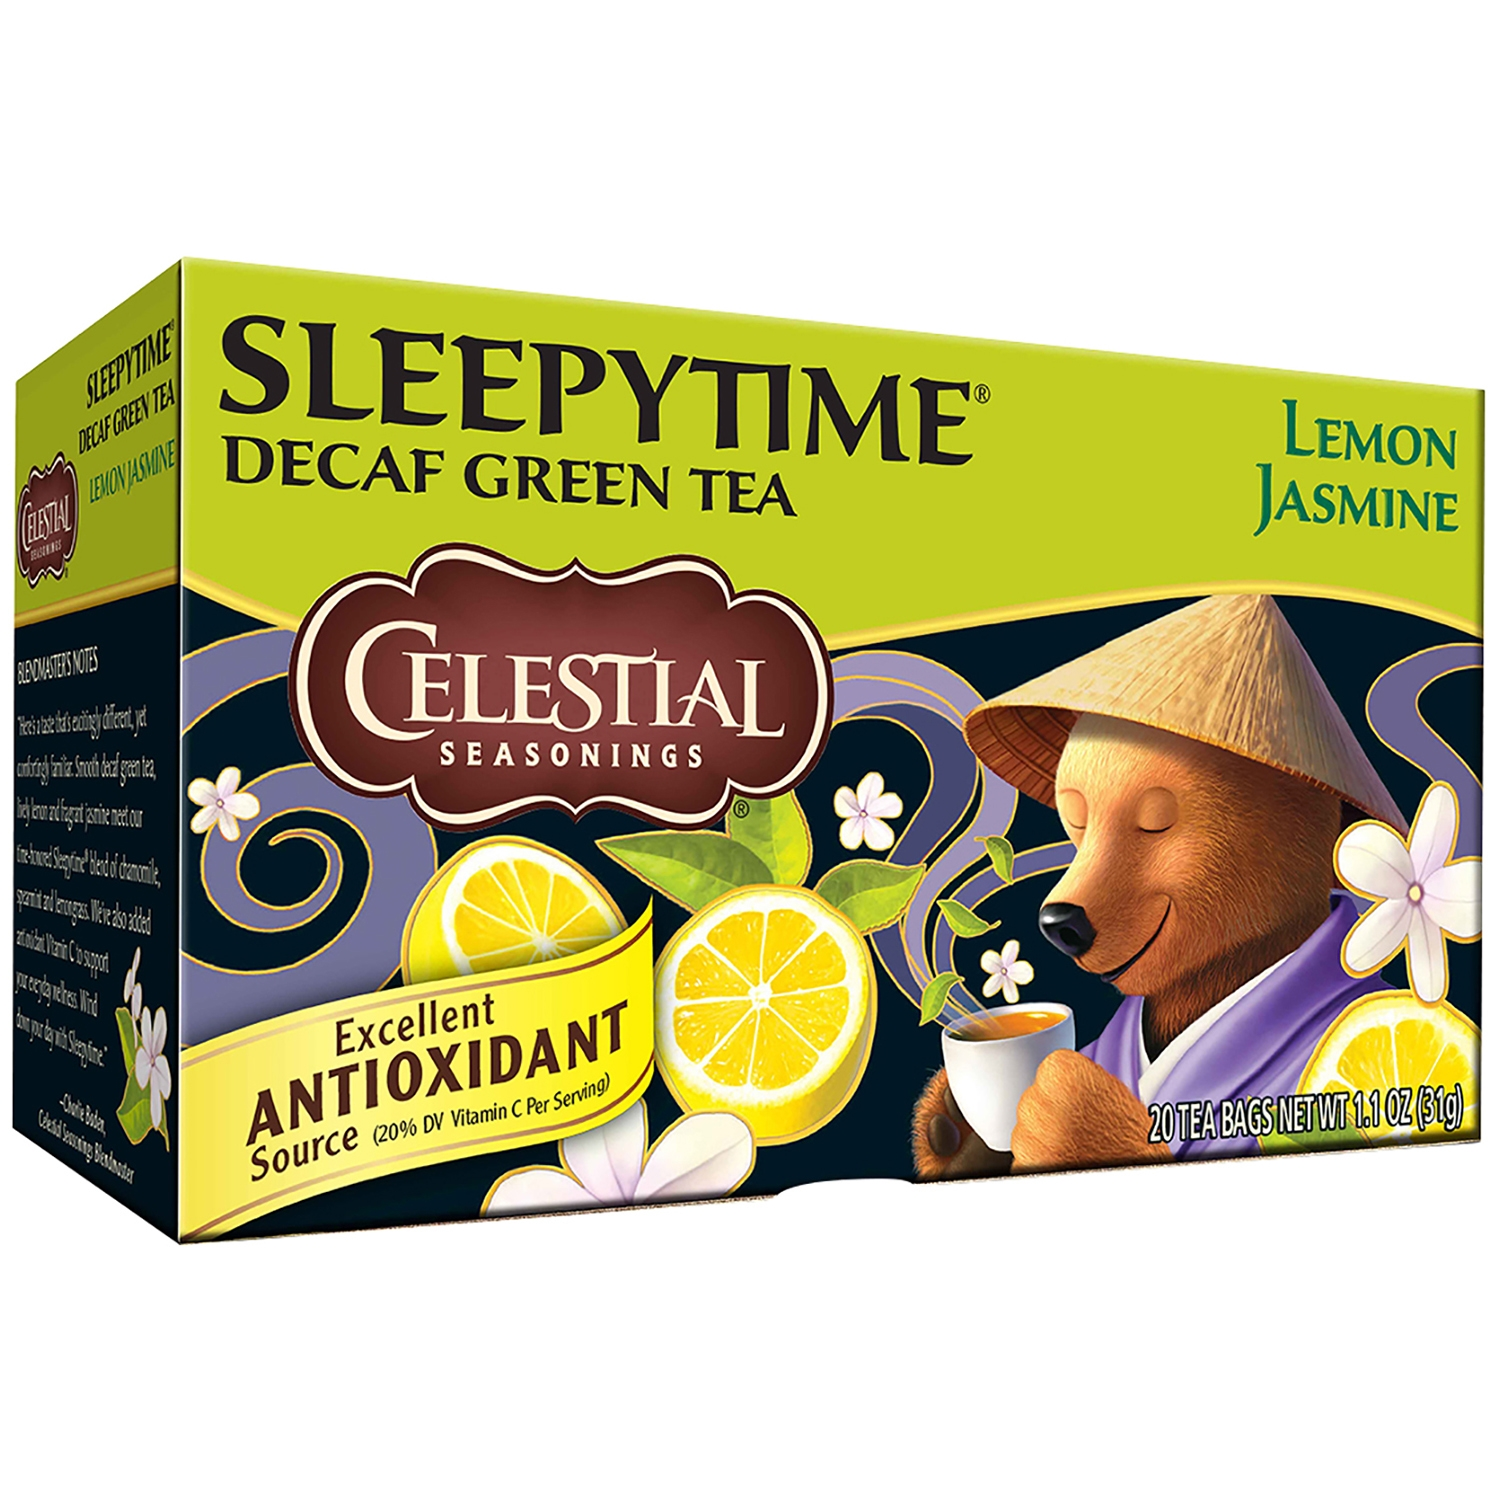 Celestial Seasonings® Sleepytime® Lemon Jasmine Decaf Green Tea Bags 20 ct Box